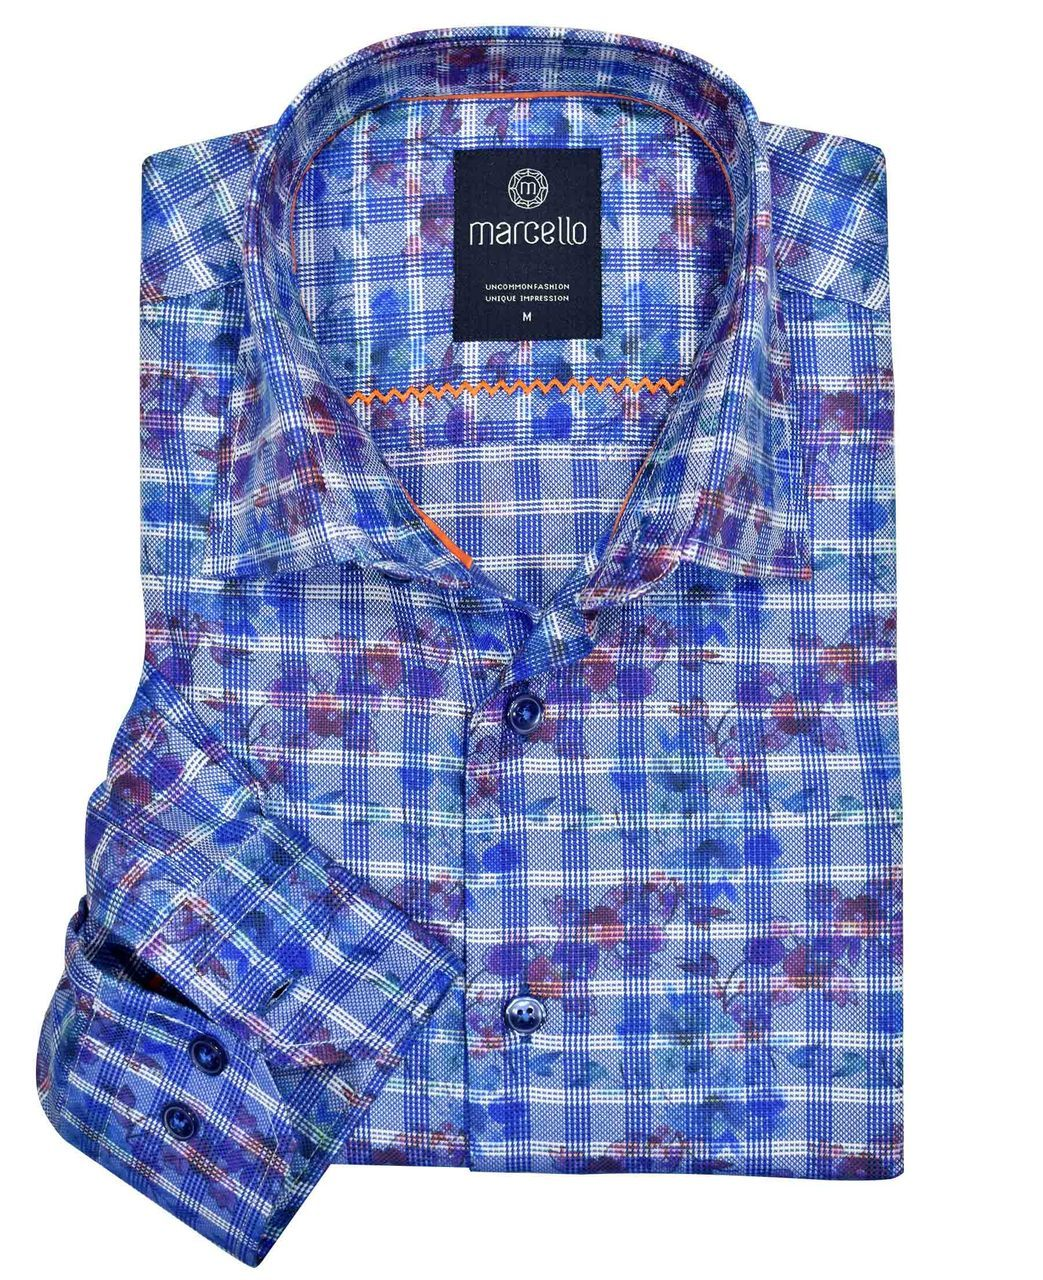 W1086 Royal Plaid Over Print - Marcello Sport